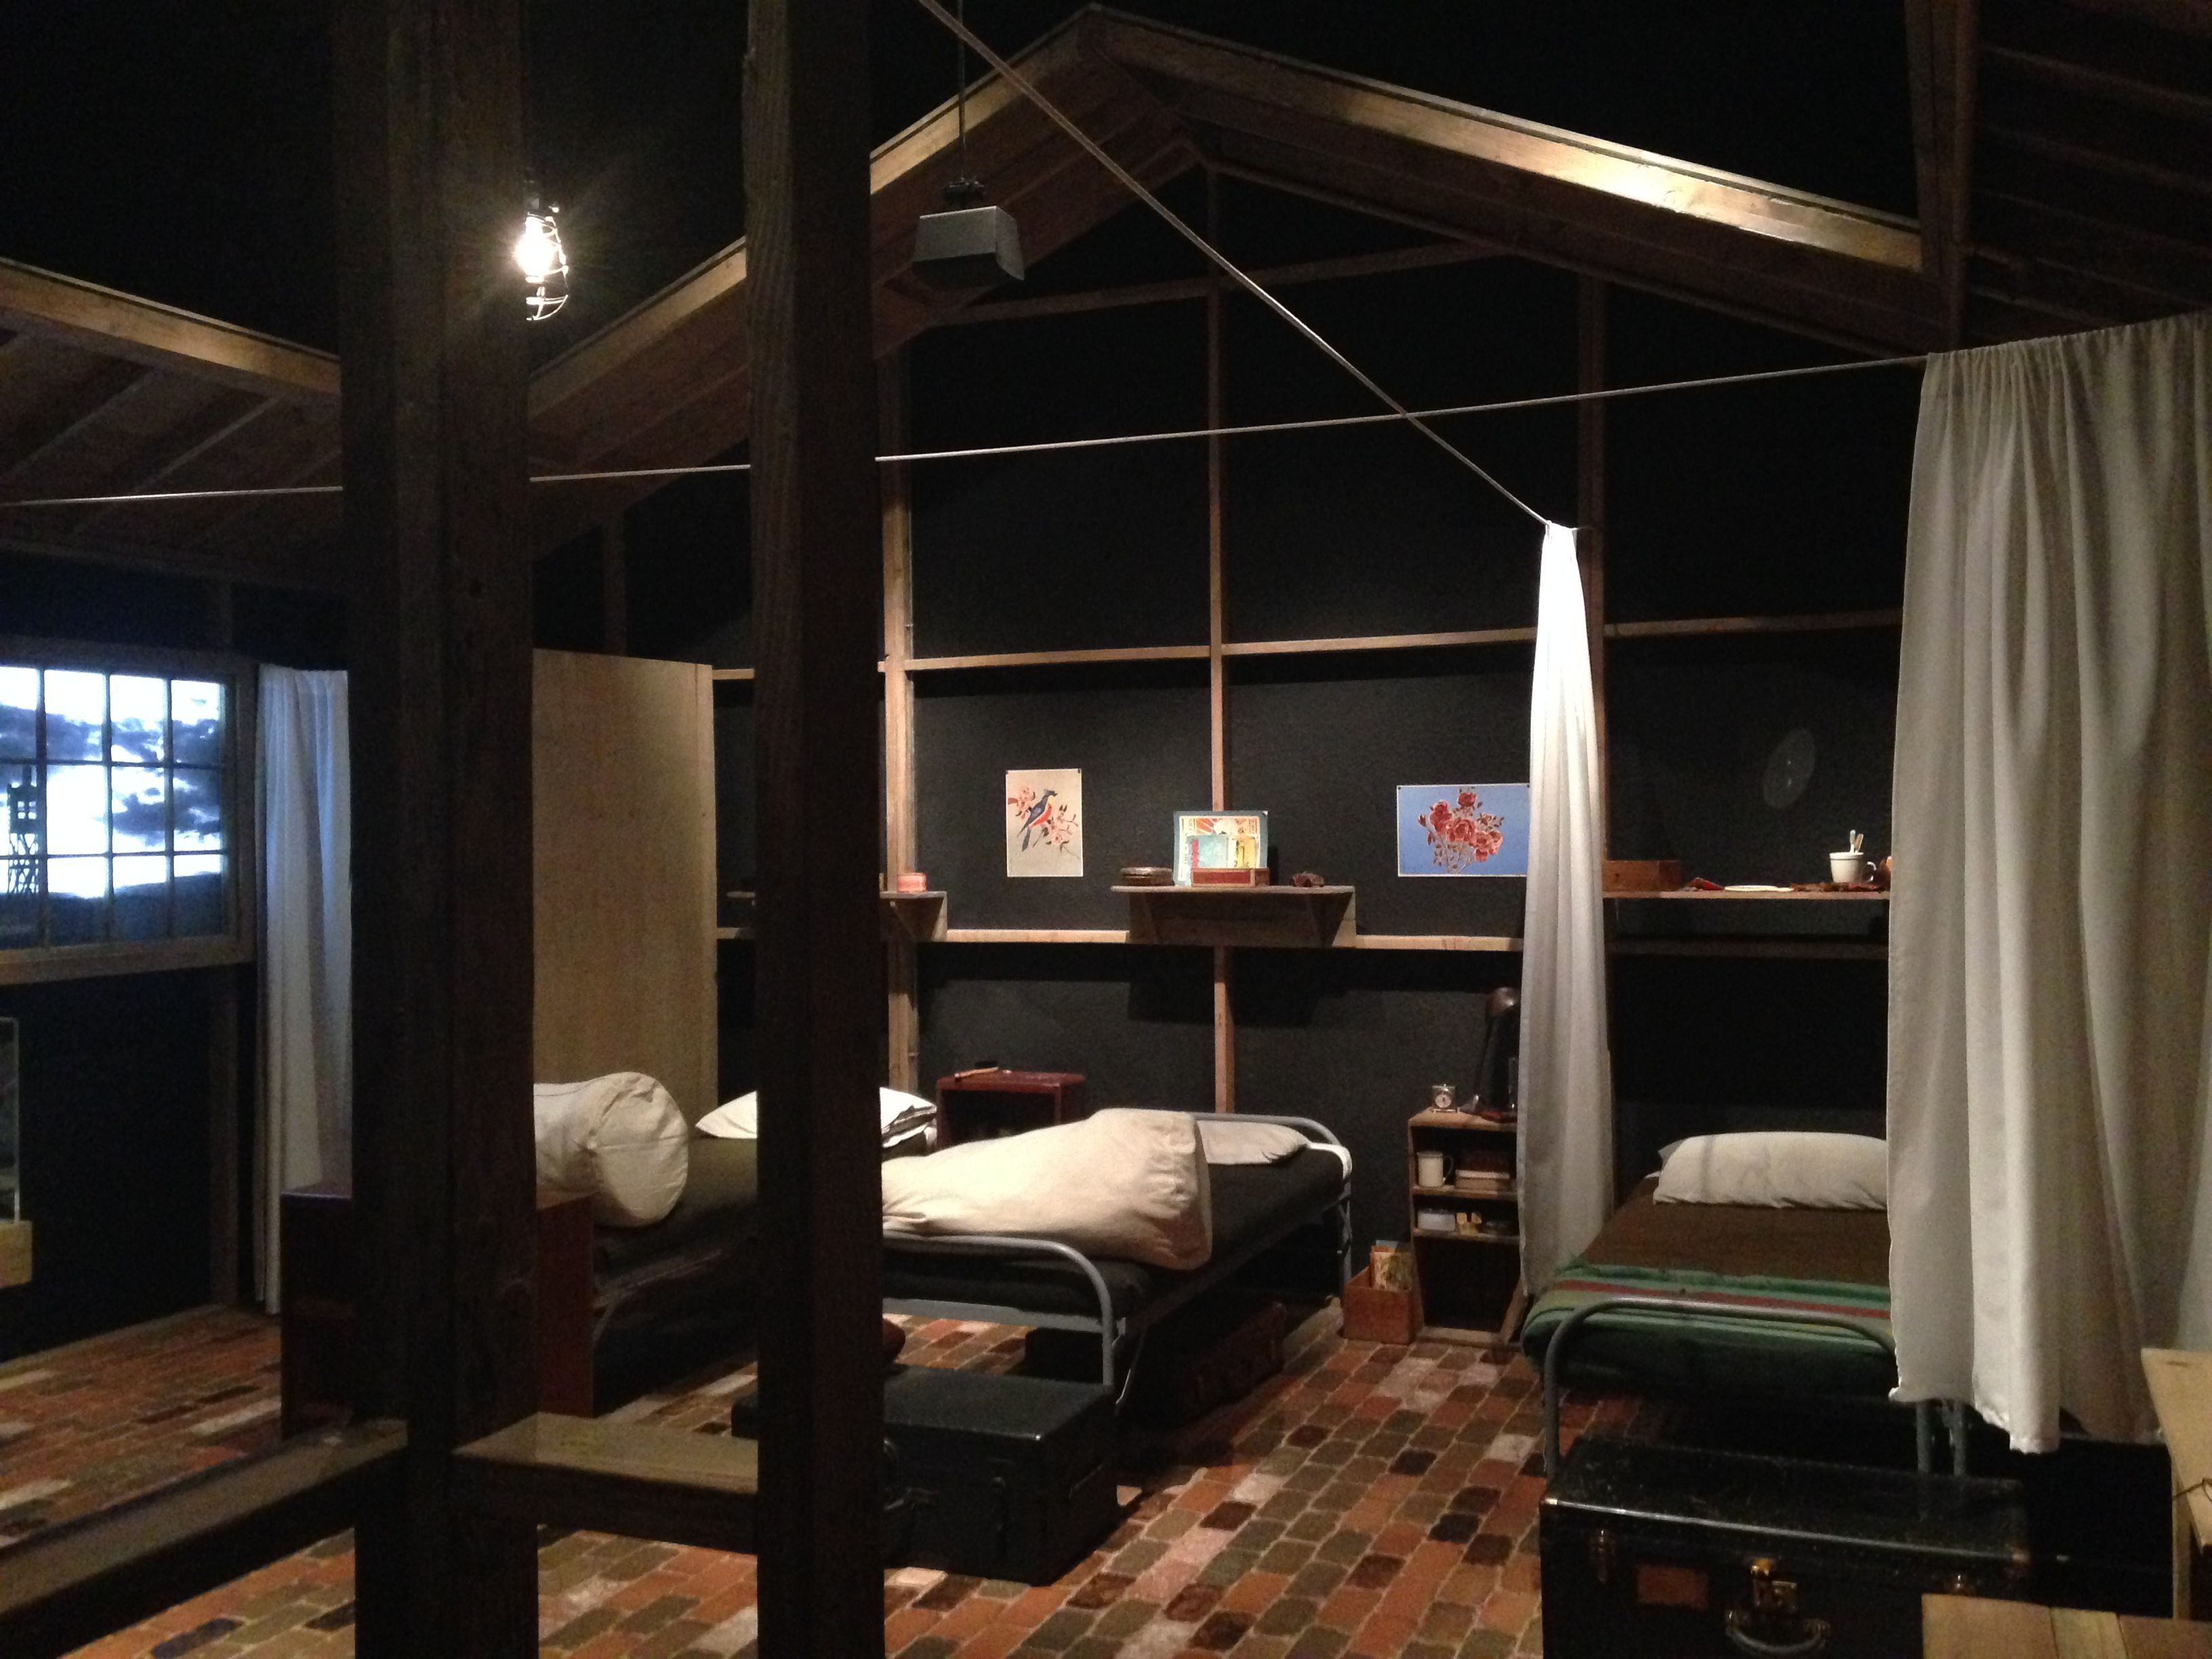 Fully interactive permanent exhibition space reproducing lodging in